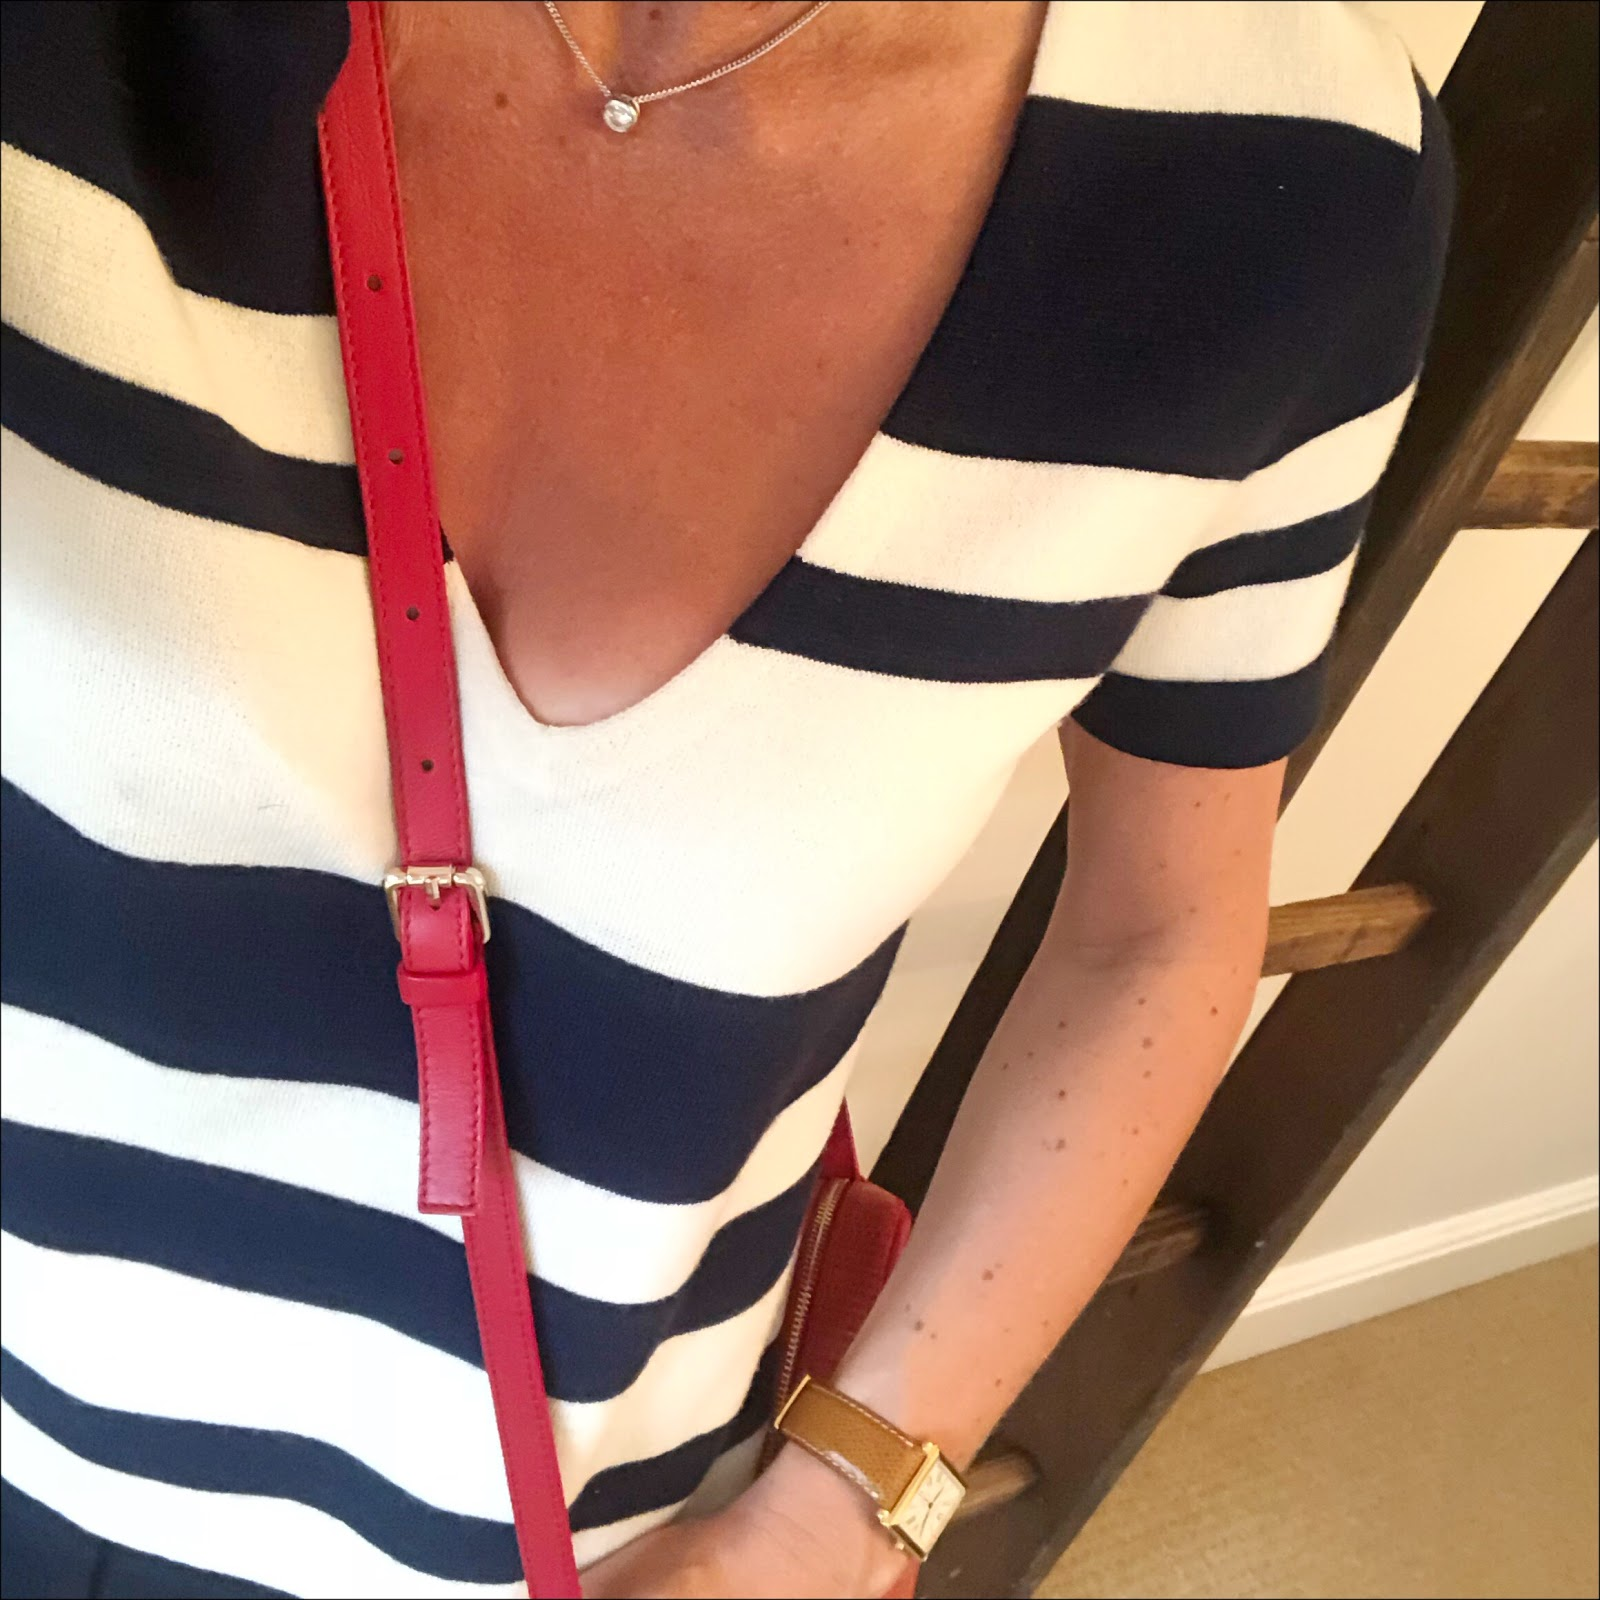 my midlife fashion, j crew striped short sleee knitted top, j crew cropped kick flare trousers, uterque mock croc cross body bag, j crew suede woven wedge sandals